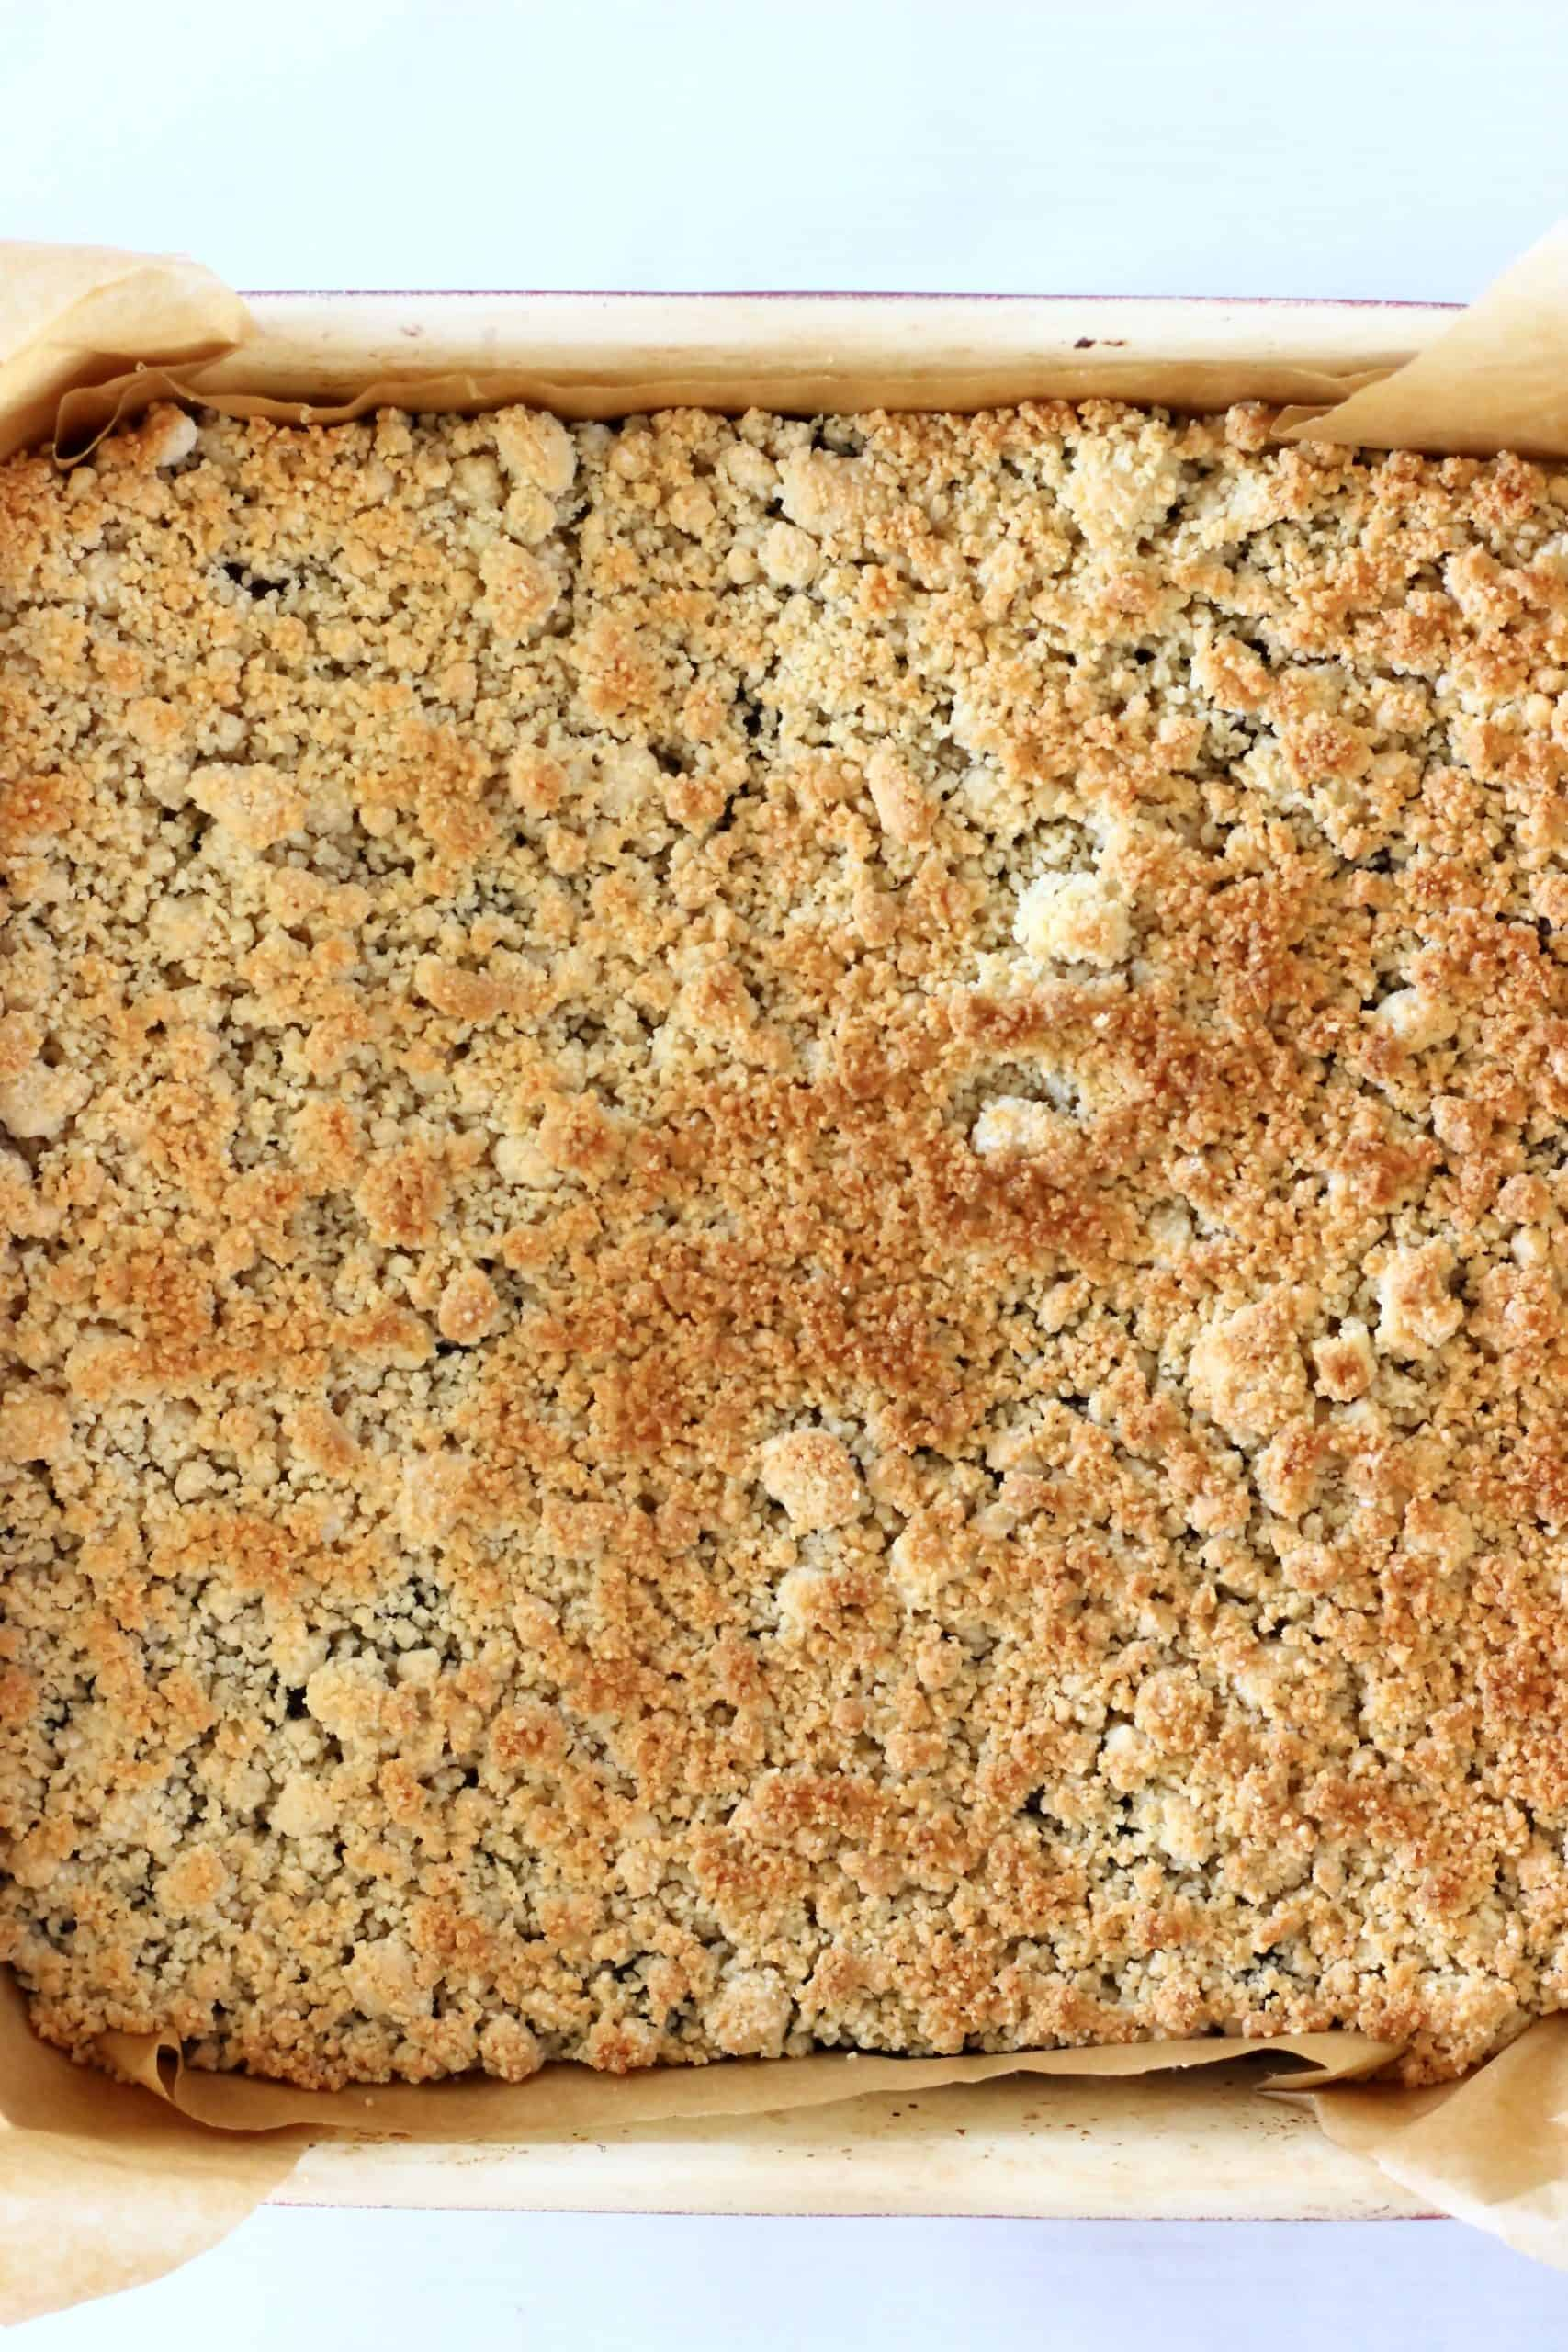 Baked gluten-free vegan blueberry crumble bars in a square baking tin